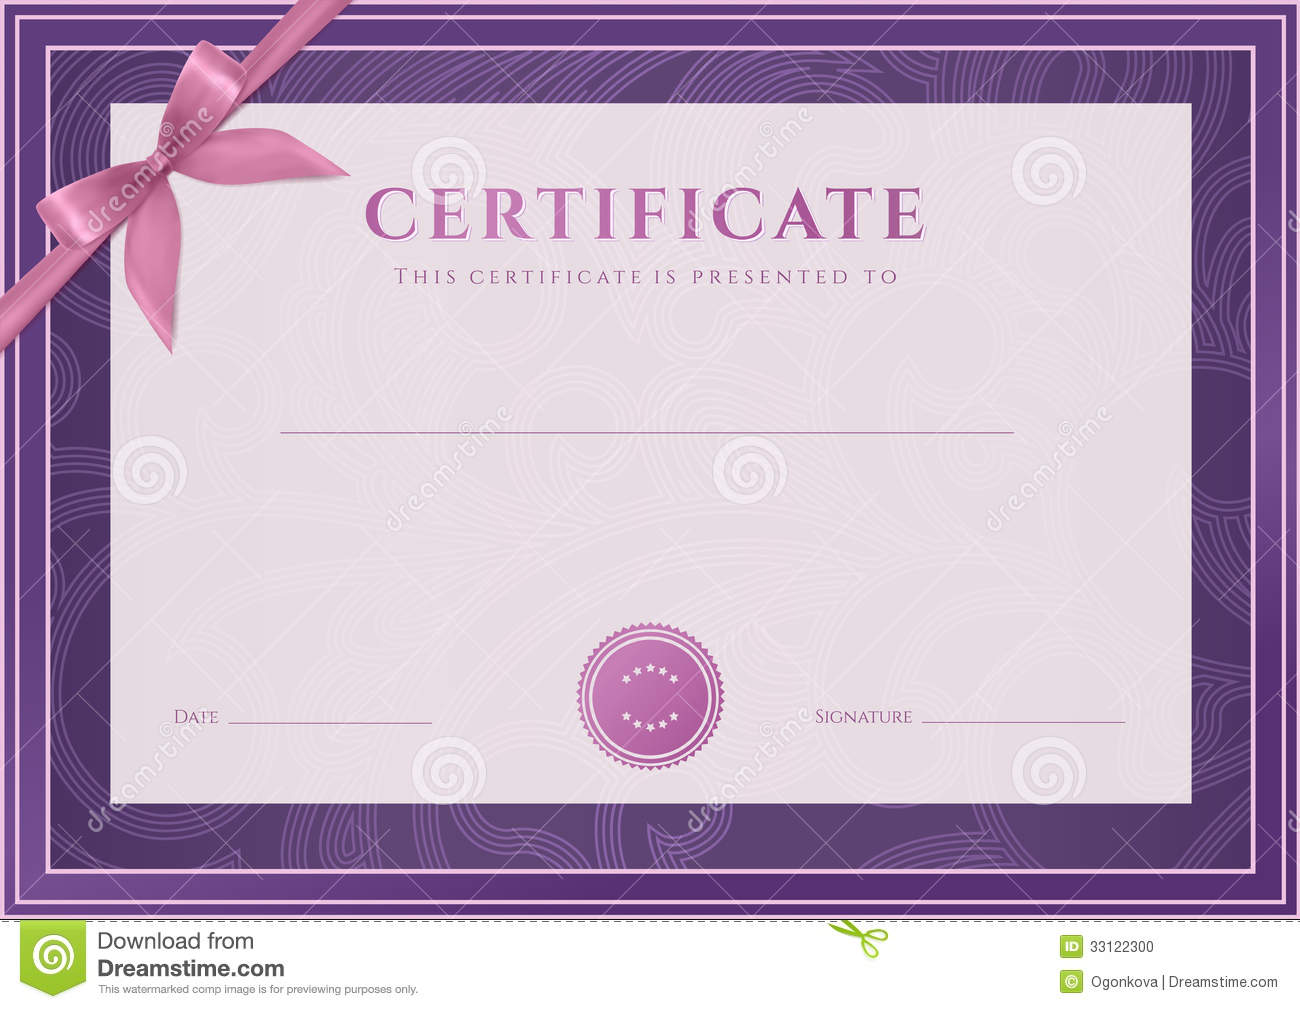 Certificate template no border gallery certificate design and certificate template no border gallery certificate design and certificate template no border images certificate design and yelopaper Gallery